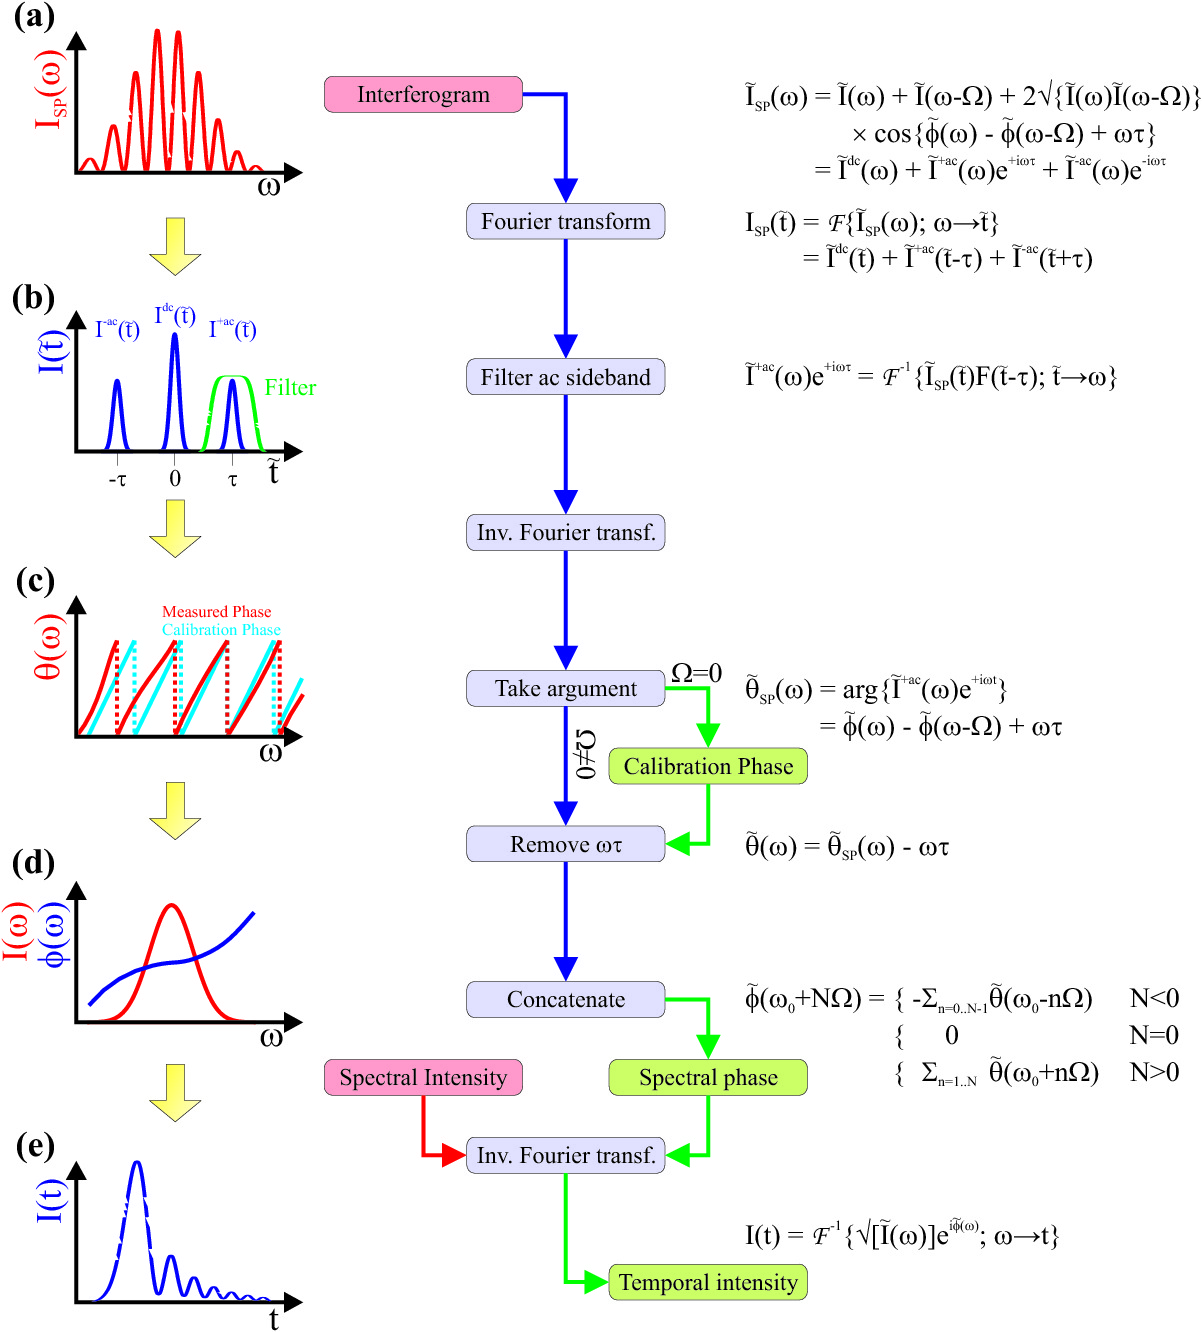 Flow Chart Excel Template: SPIDER reconstruction flow chart.jpg - Wikipedia,Chart